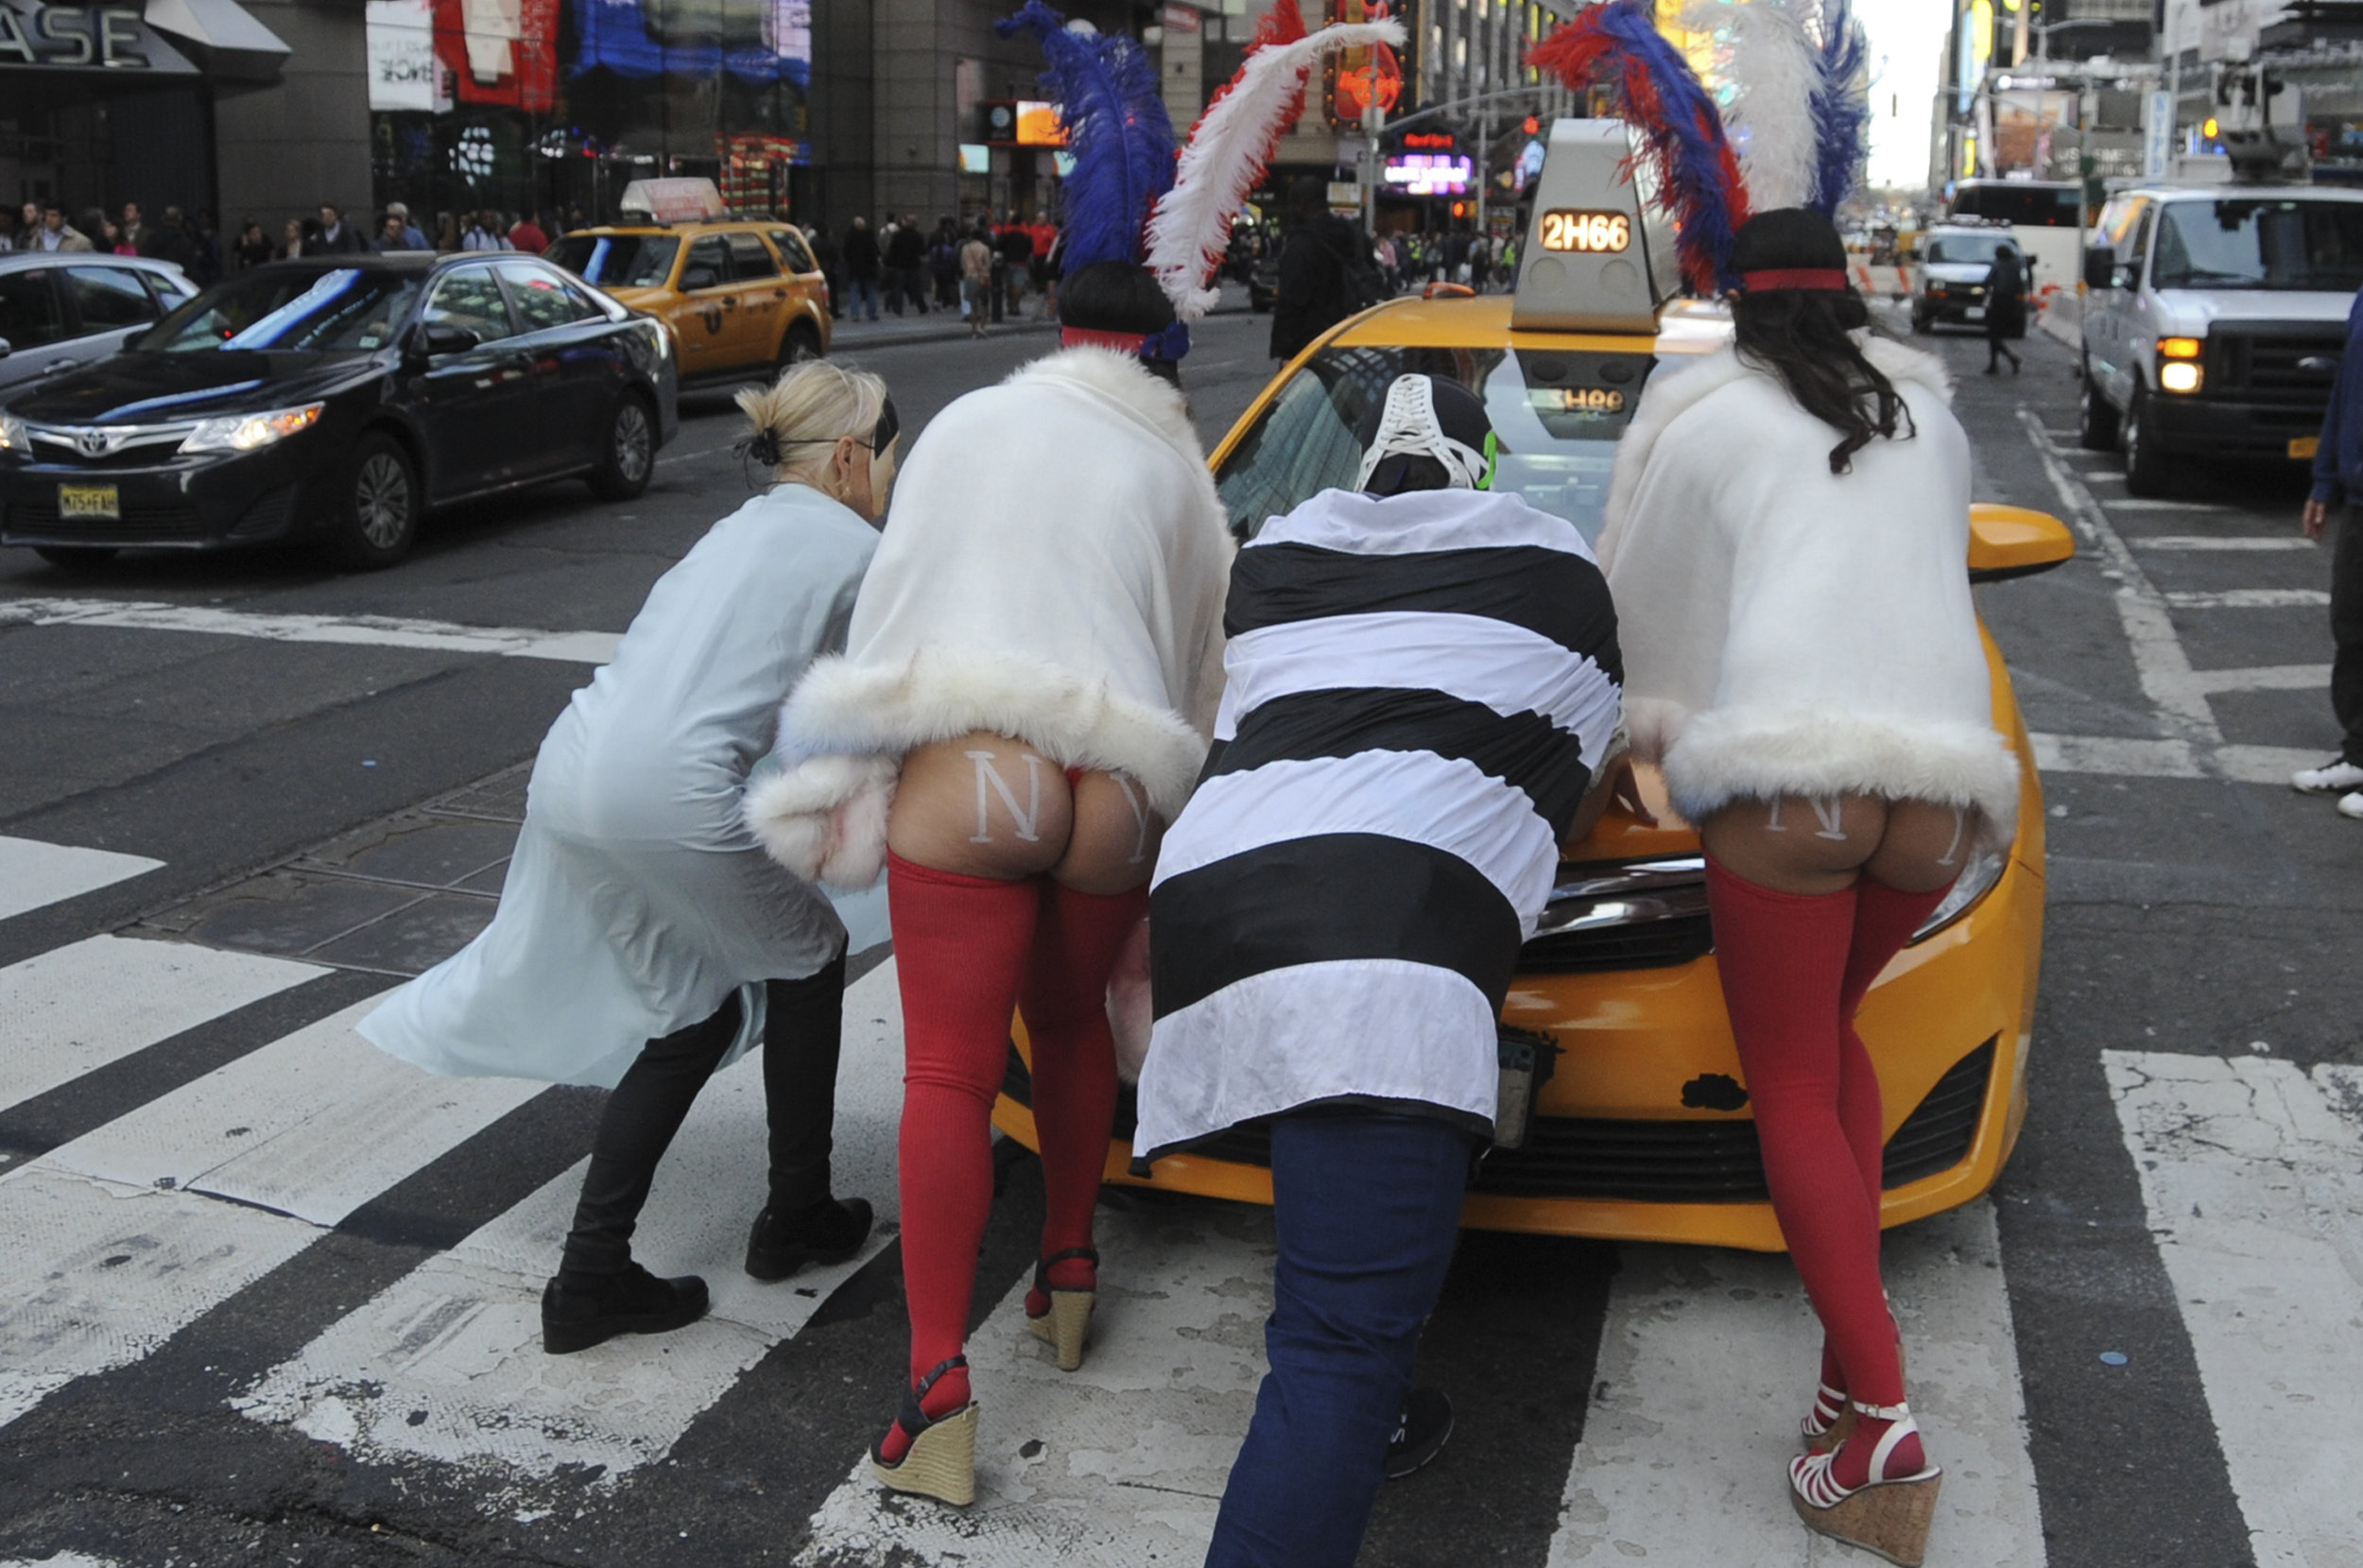 Third Place